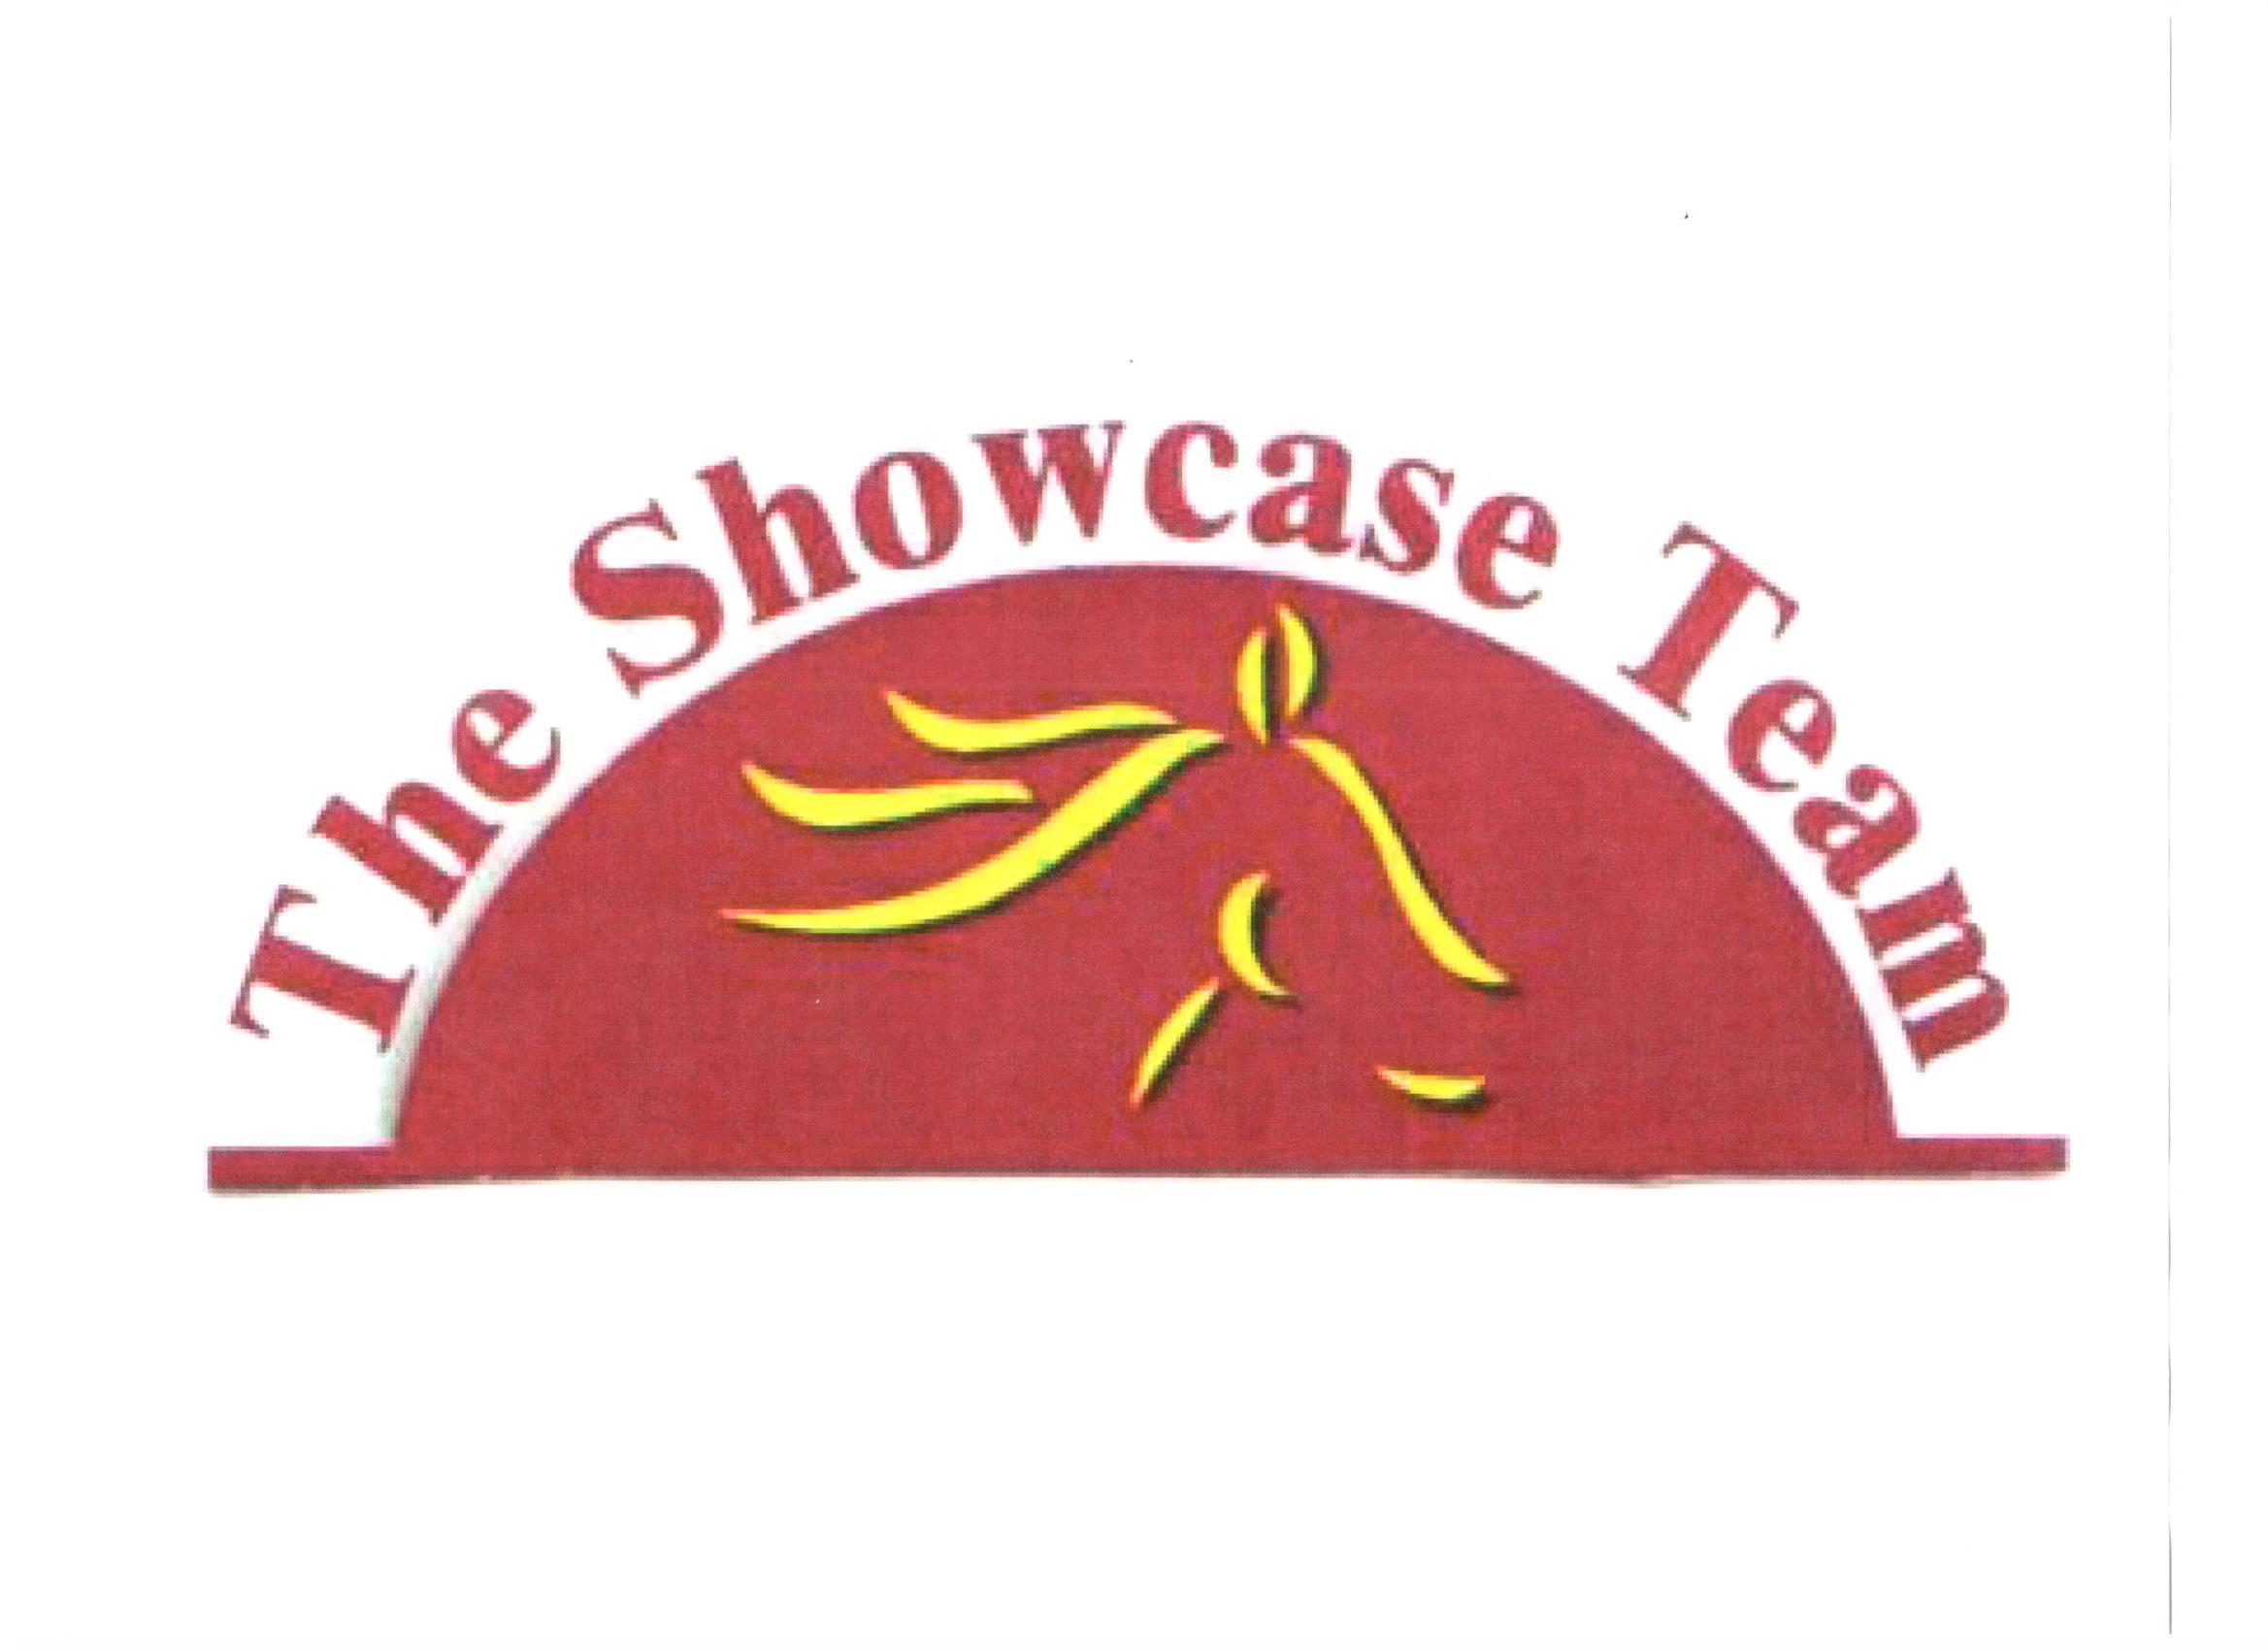 The Showcase Team